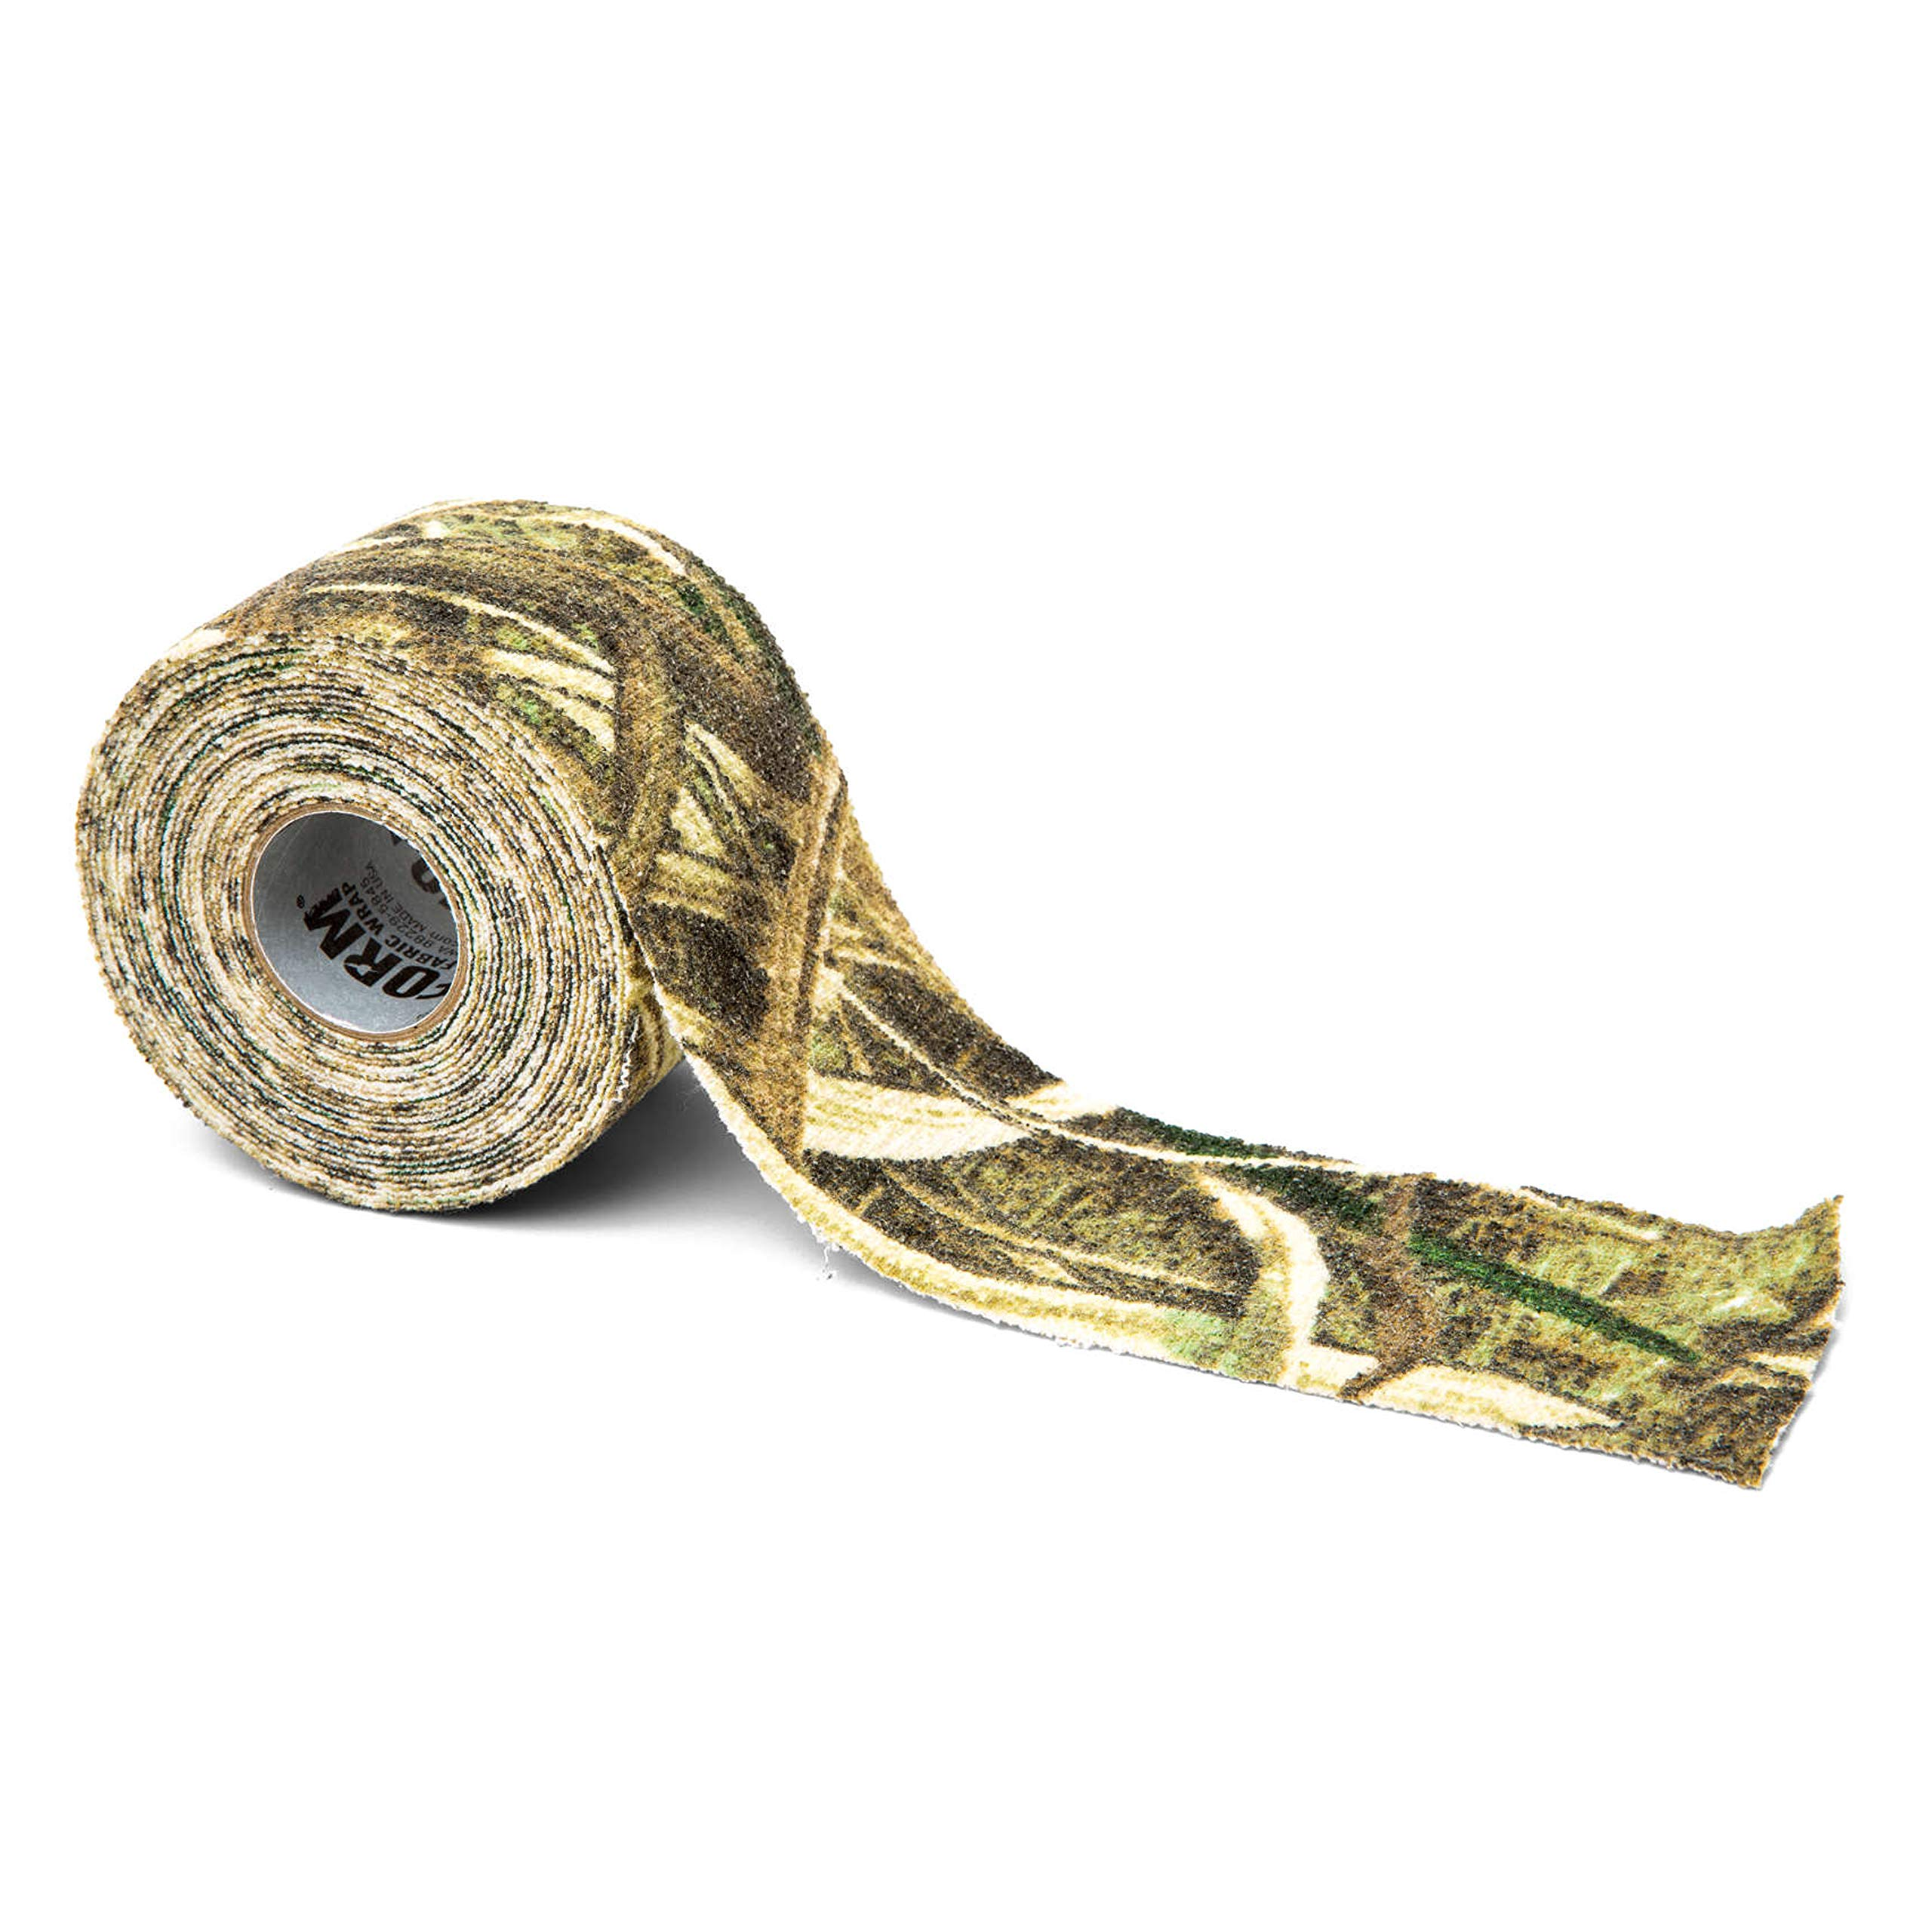 GEAR AID Camo Form Self-Cling and Reusable Camouflage Wrap, Mossy Oak Shadow Grass Blades, 2'' x 144'' Roll by GEAR AID